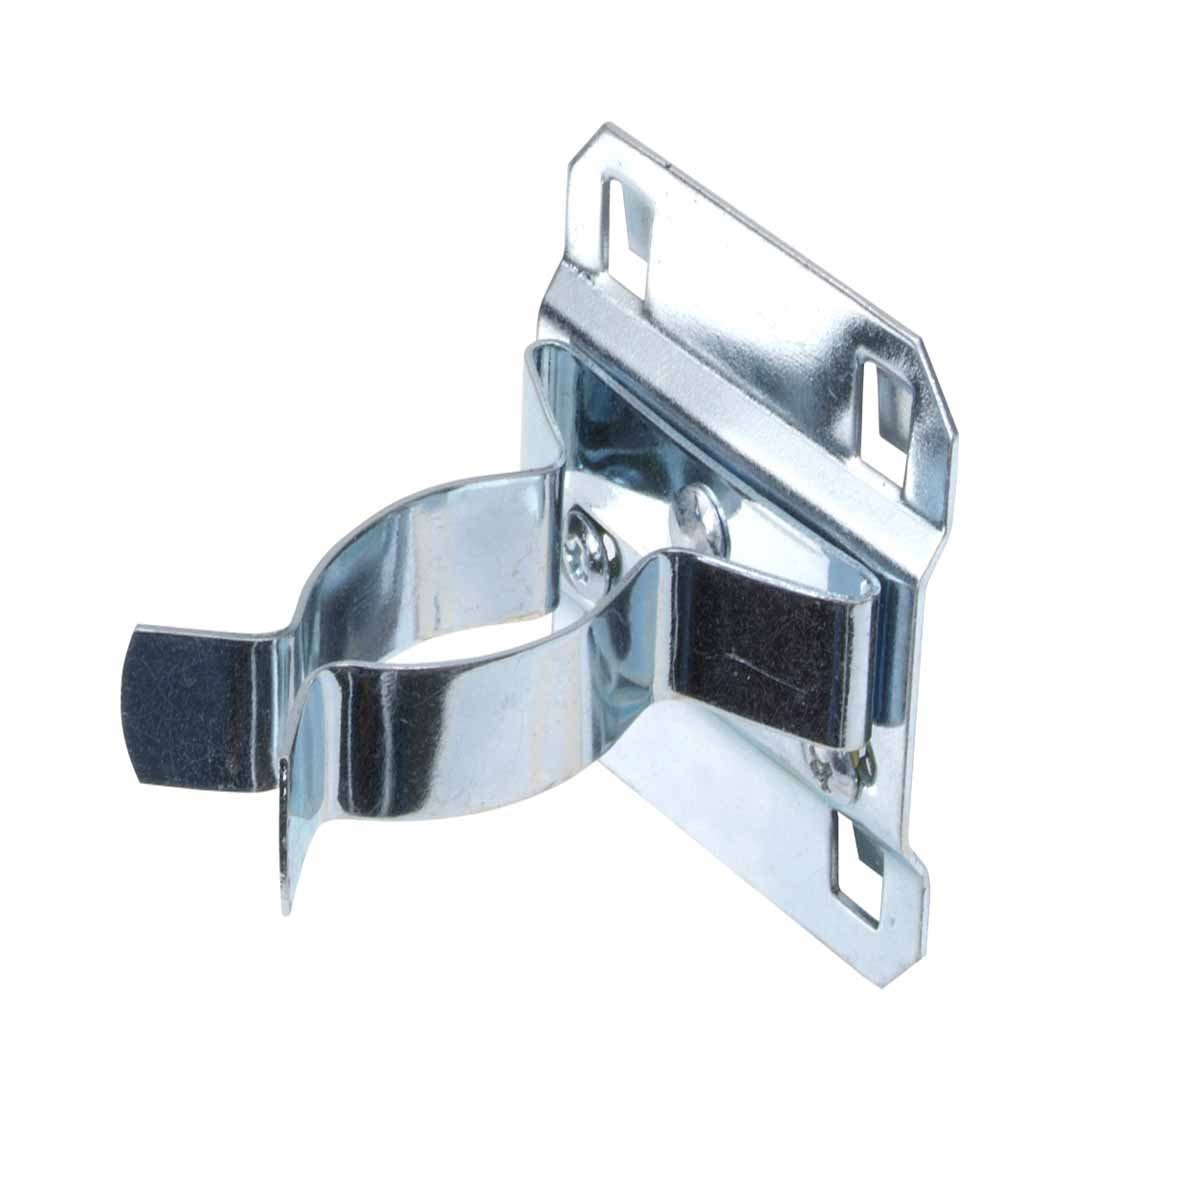 Triton Products 53120 LocHook 1 Inch to 2 Inch Hold Range 2 3 4 Inch Projection Zinc Plated Chromate Dipped Steel Extended Spring Clip for LocBoard 5 Pack